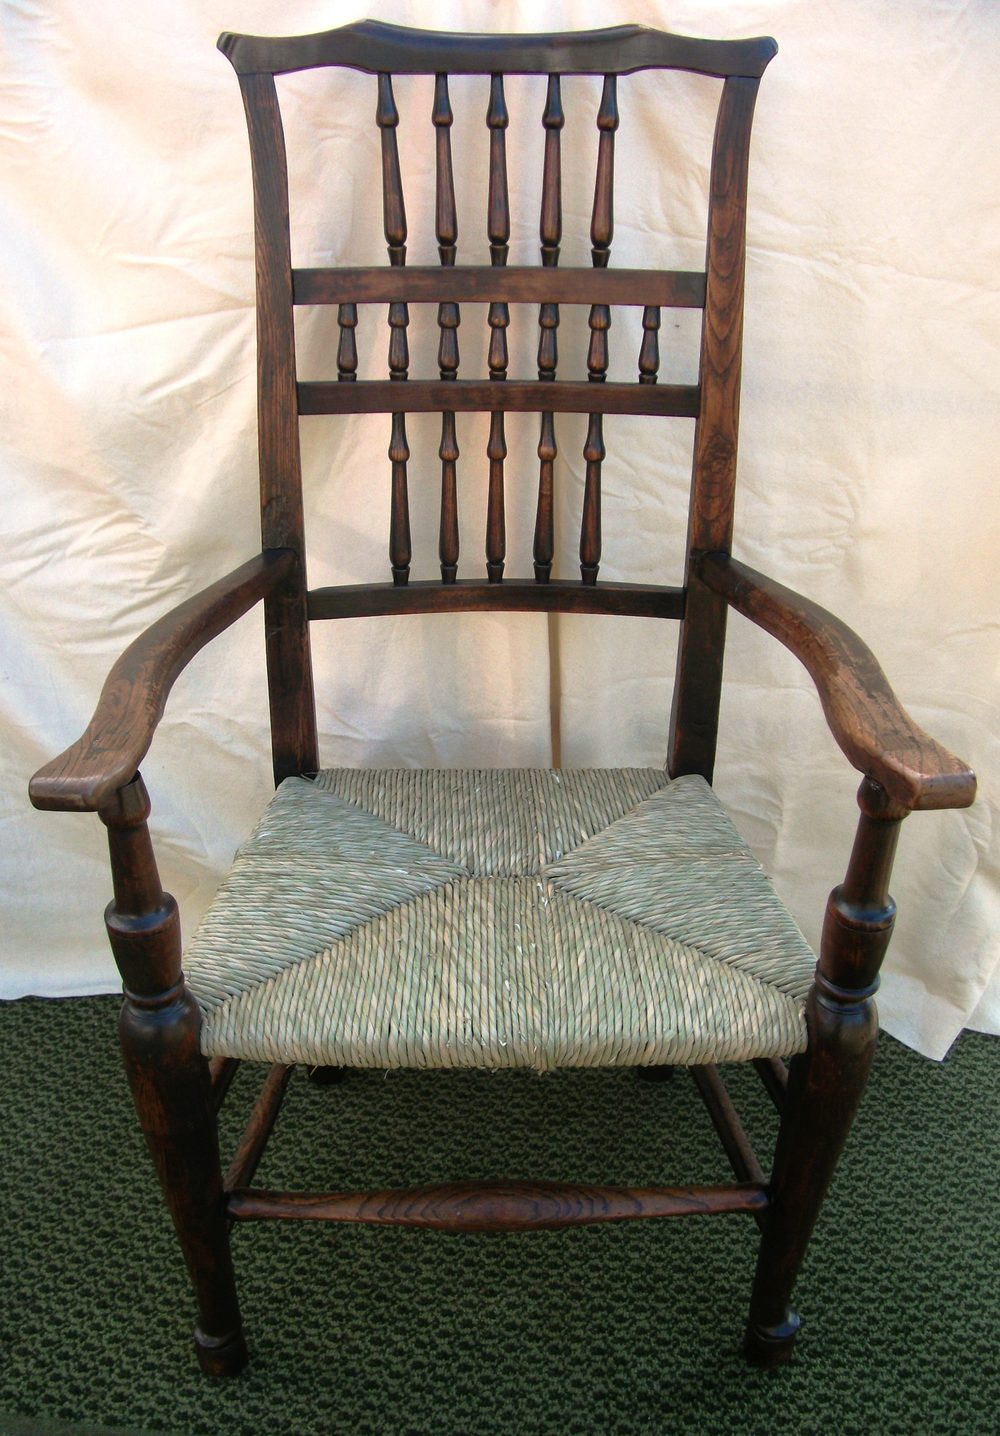 Antique Earback Spindle Armchair - Antiques Atlas